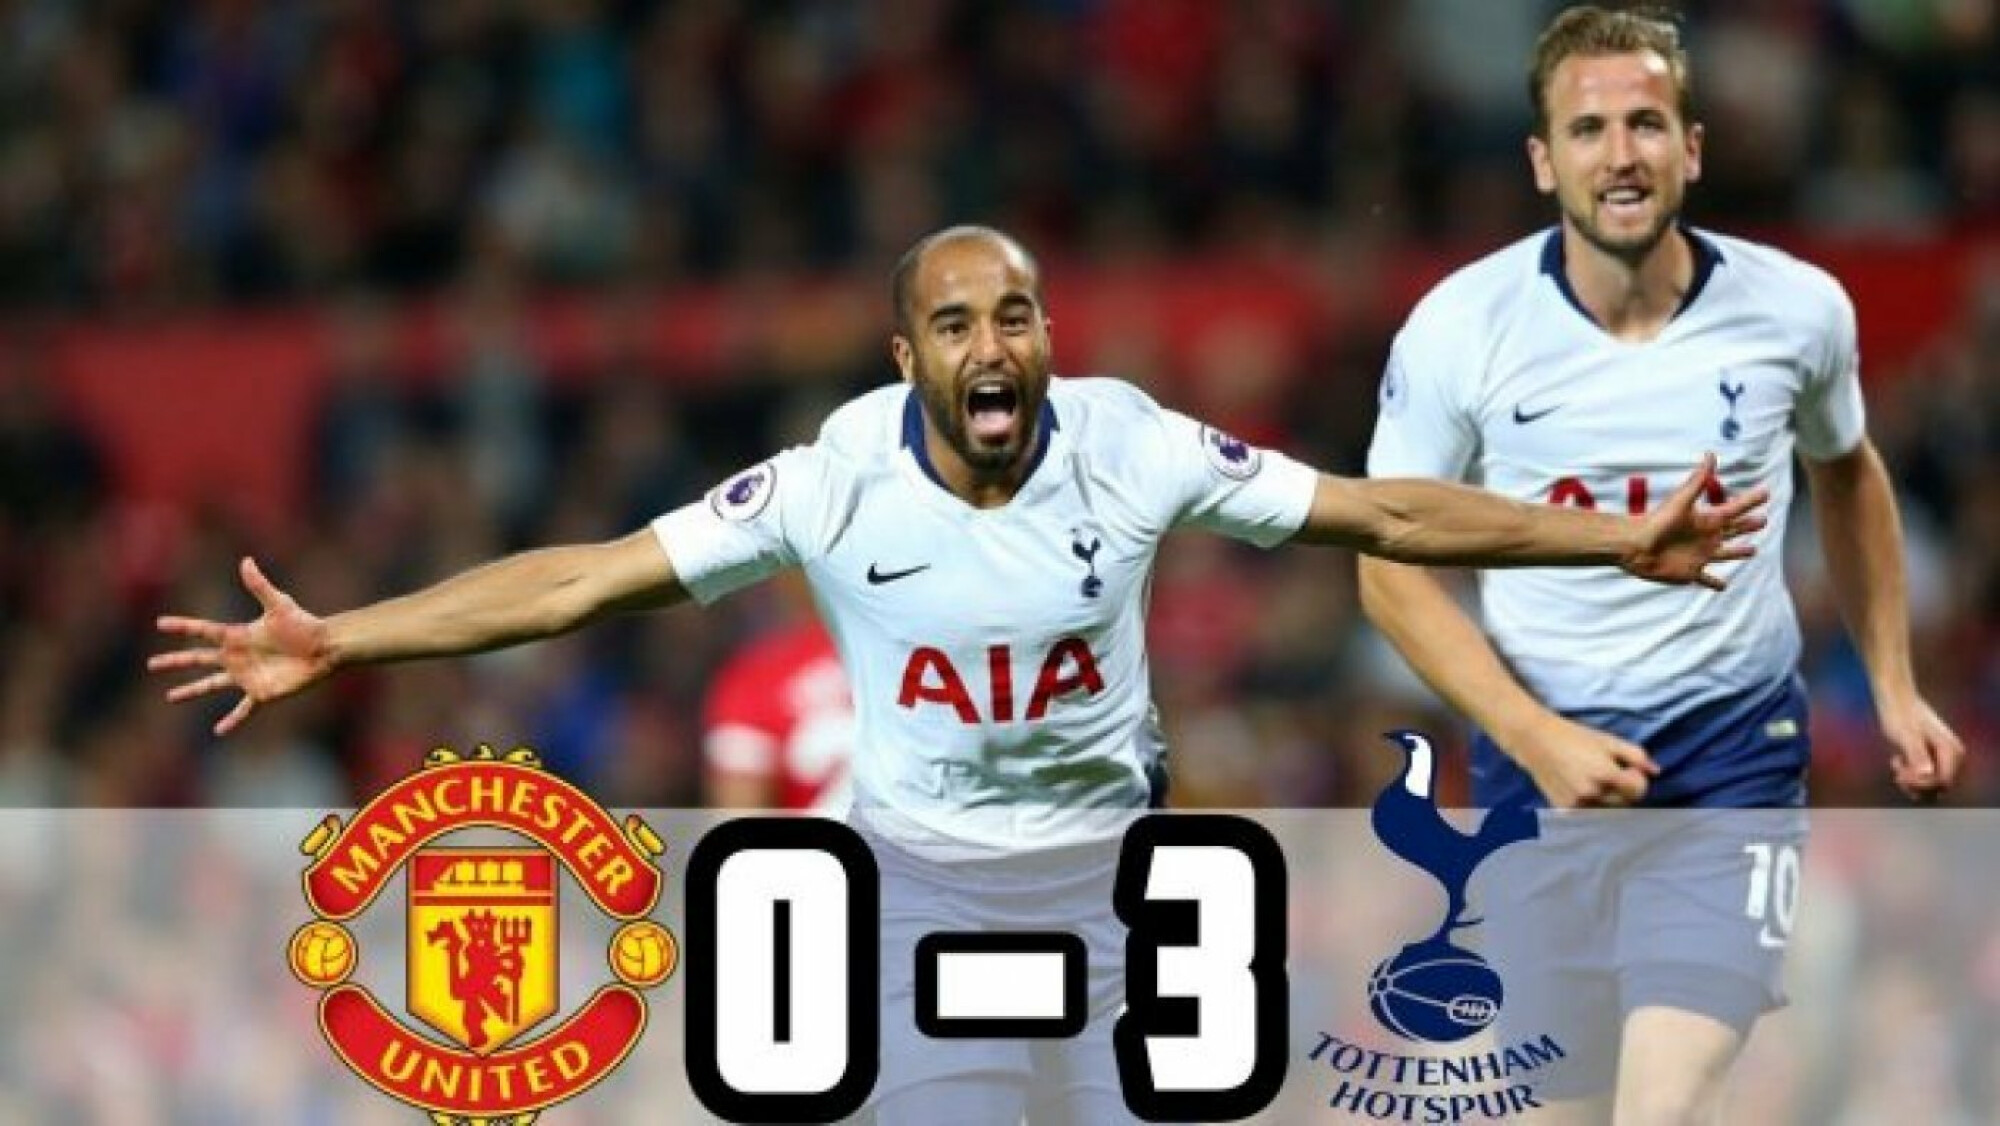 Spurs dismantle Manchester United to announce their title credentials